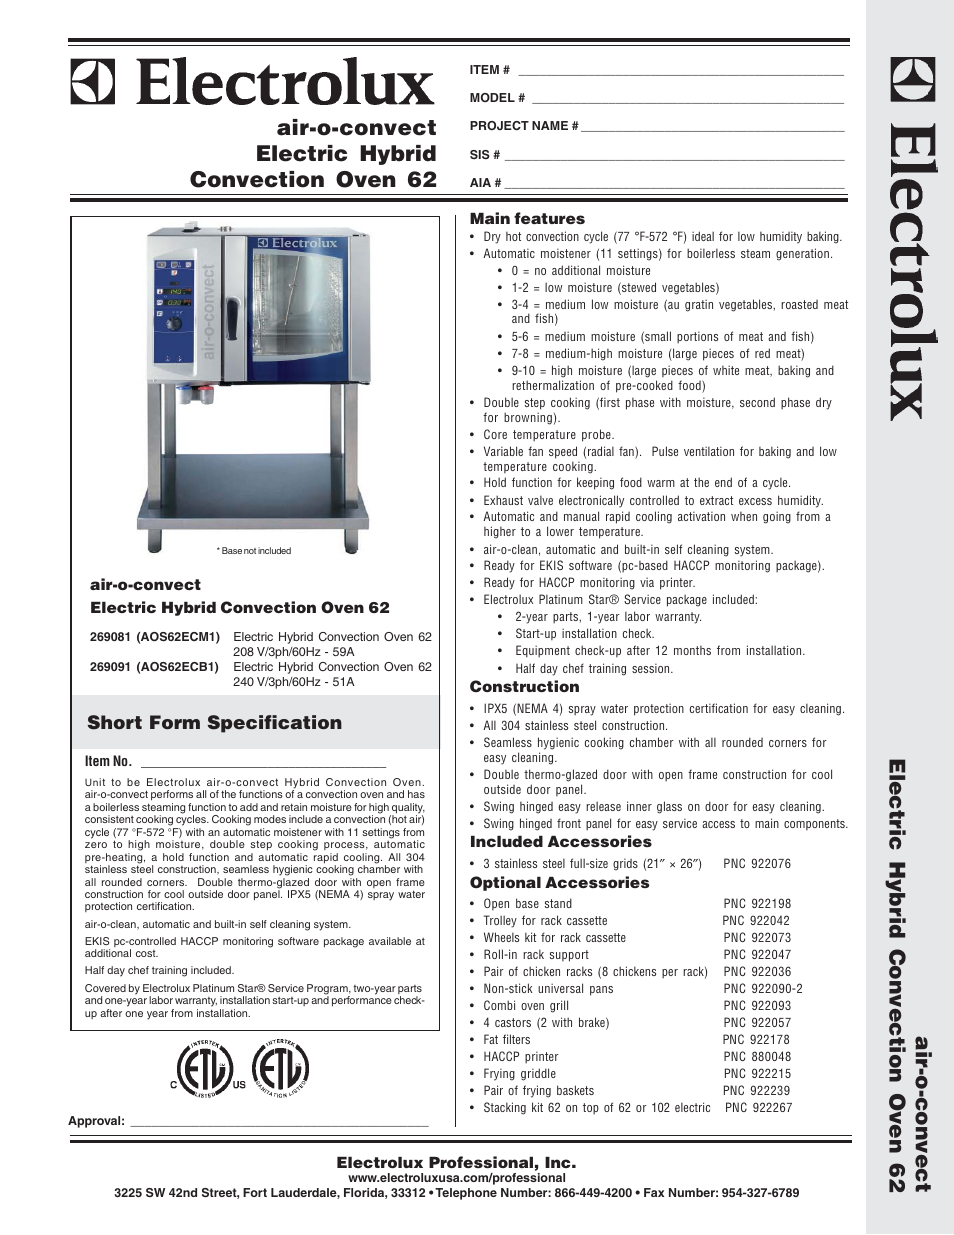 electrolux air o convect aos62ecb1 user manual 2 pages also for rh manualsdir com Hobart Convection Oven Hobart Convection Oven